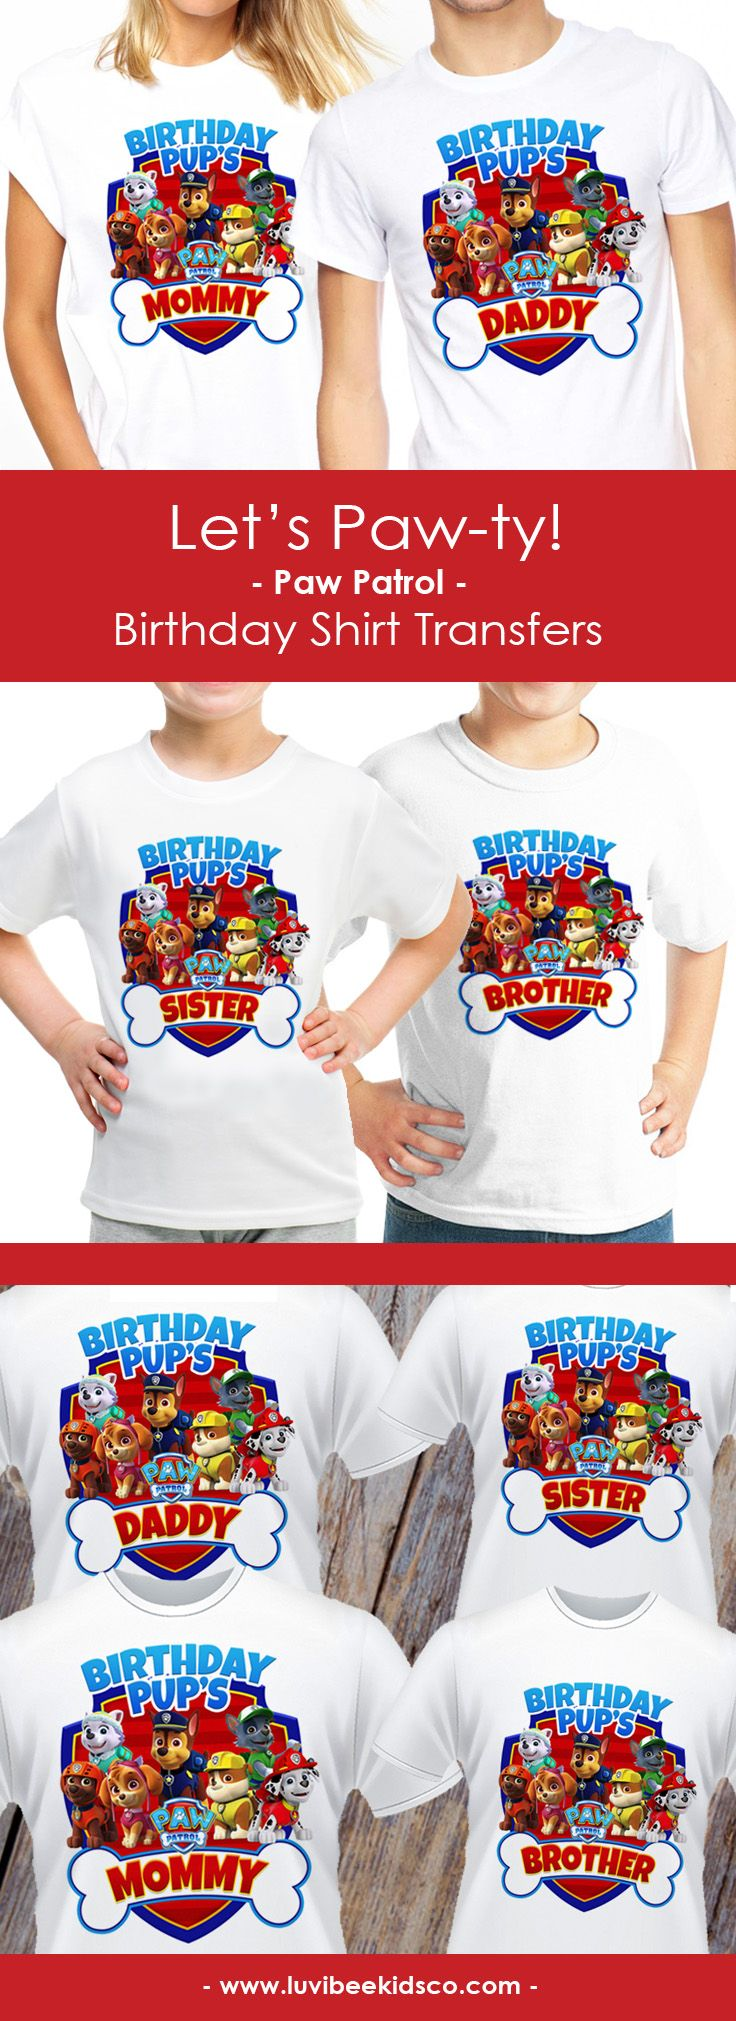 Design your own t-shirt bristol - Paw Patrol Iron On Transfers This Item Is For Do It Yourself Diy T Shirt Crafts Our Designs Are Printed Onto Avery Heat Transfers For White Or Light